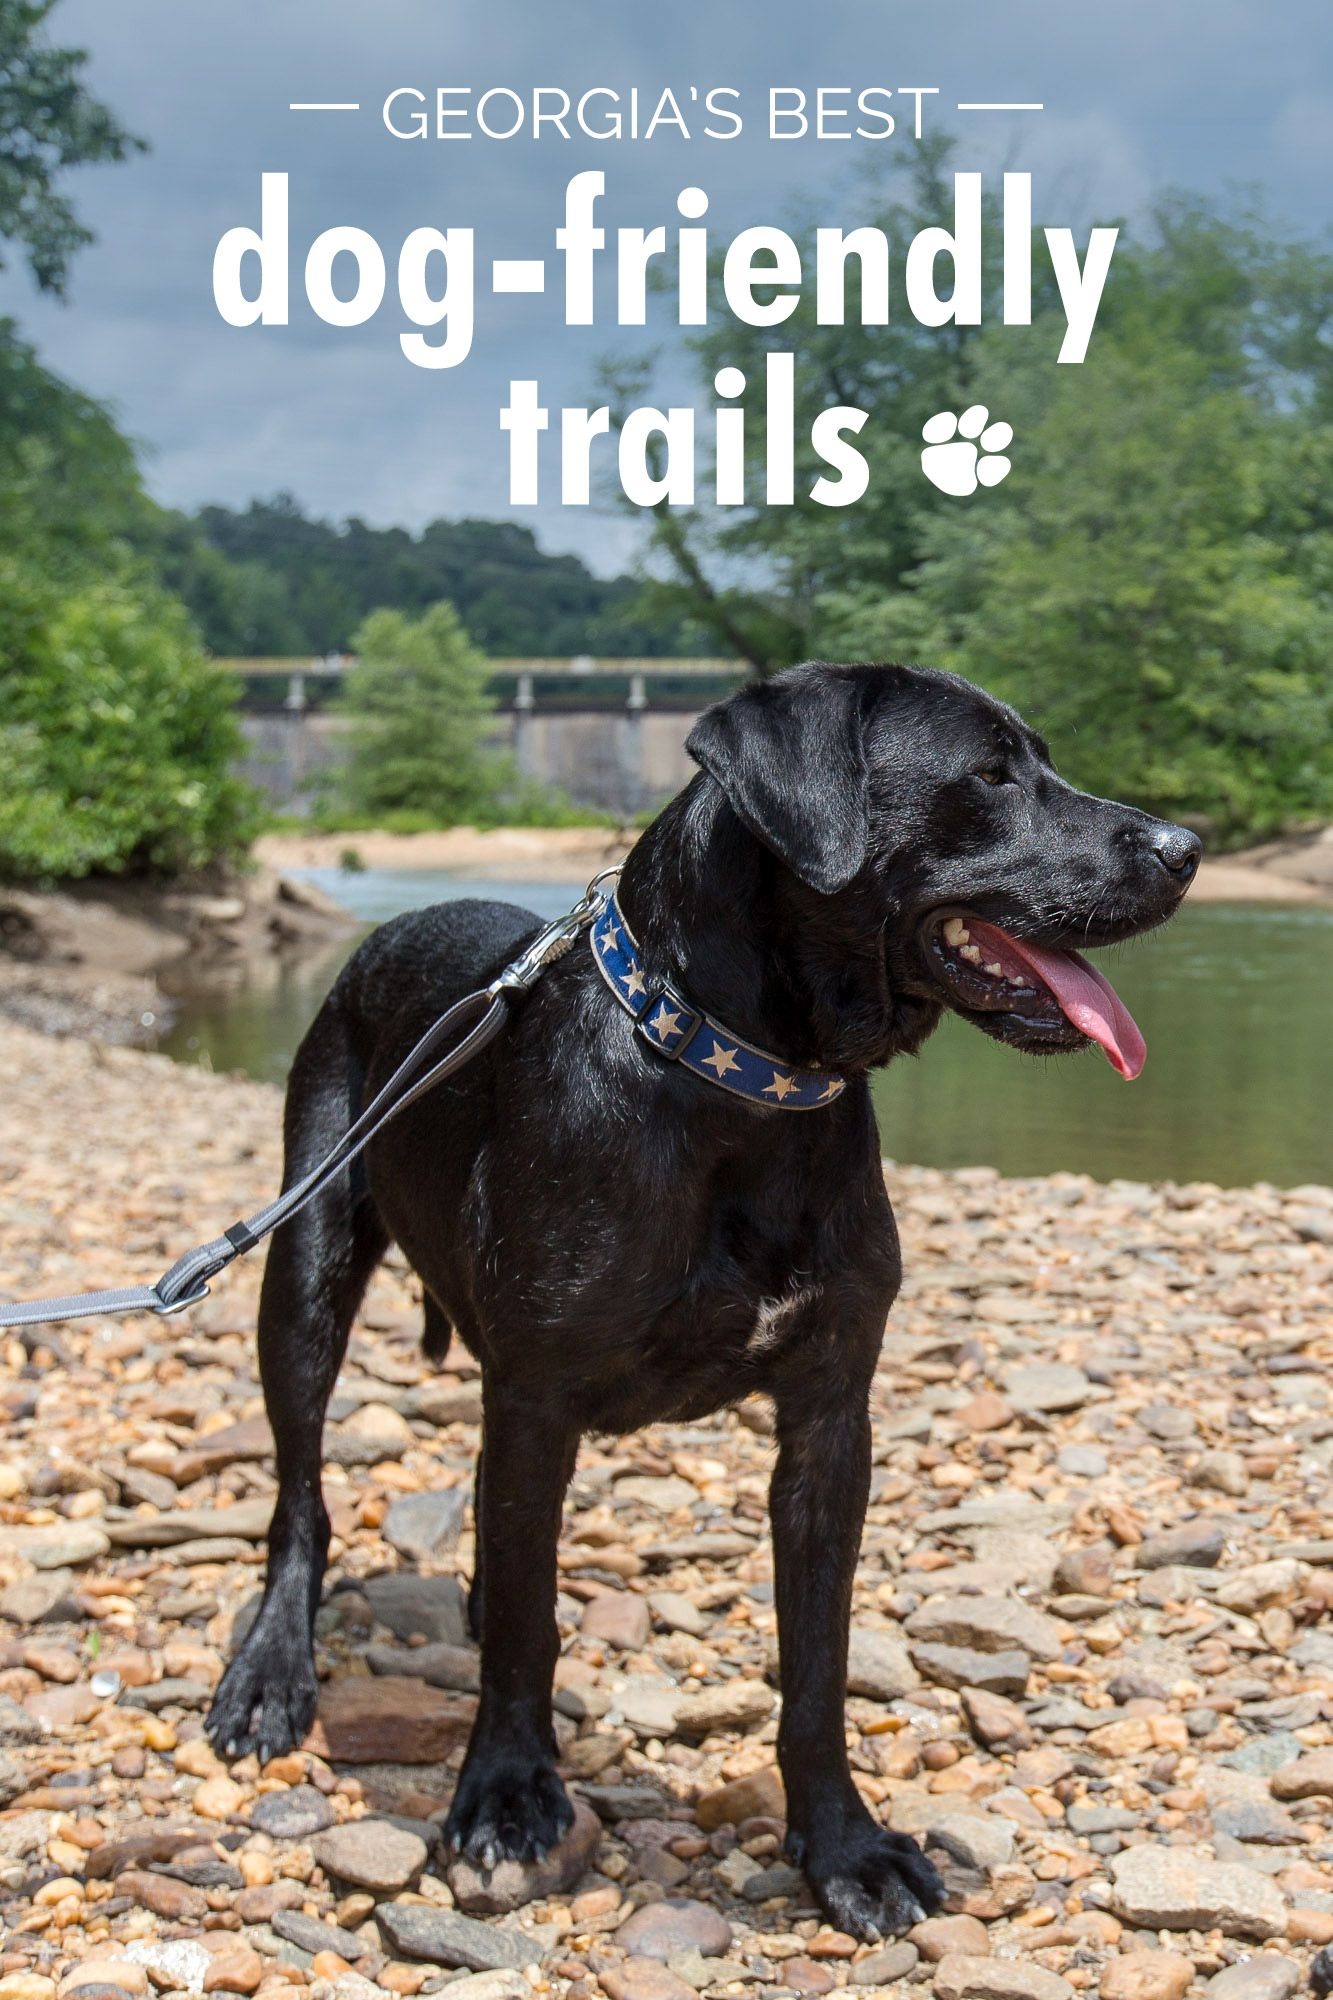 Georgia's Best Dog Friendly Trails: Our Favorite Dog Hikes